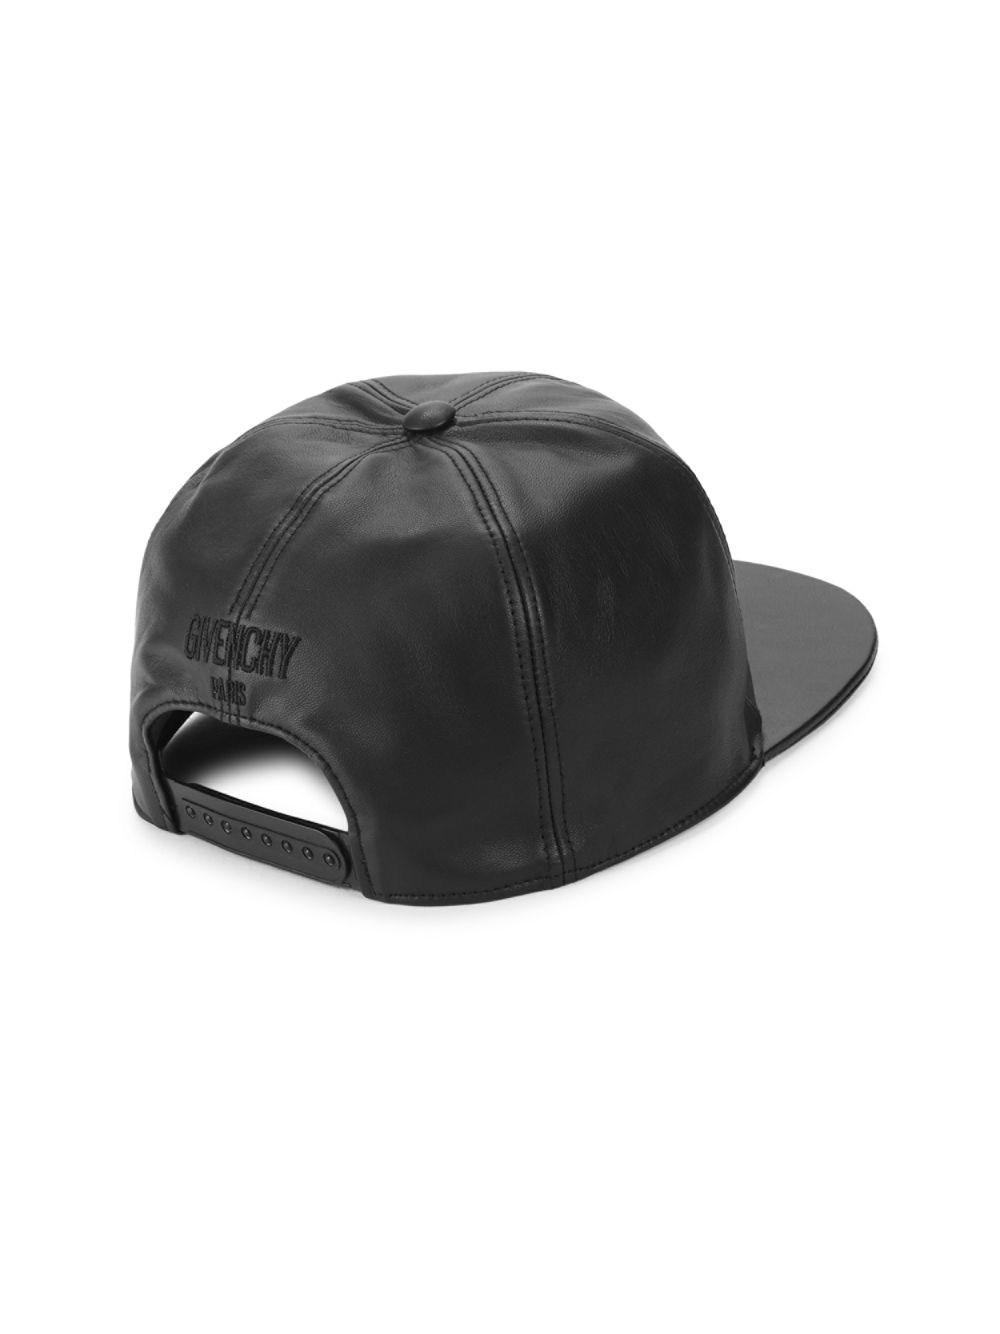 Givenchy Leather Baseball Cap in Black for Men - Lyst a6a34af1f48